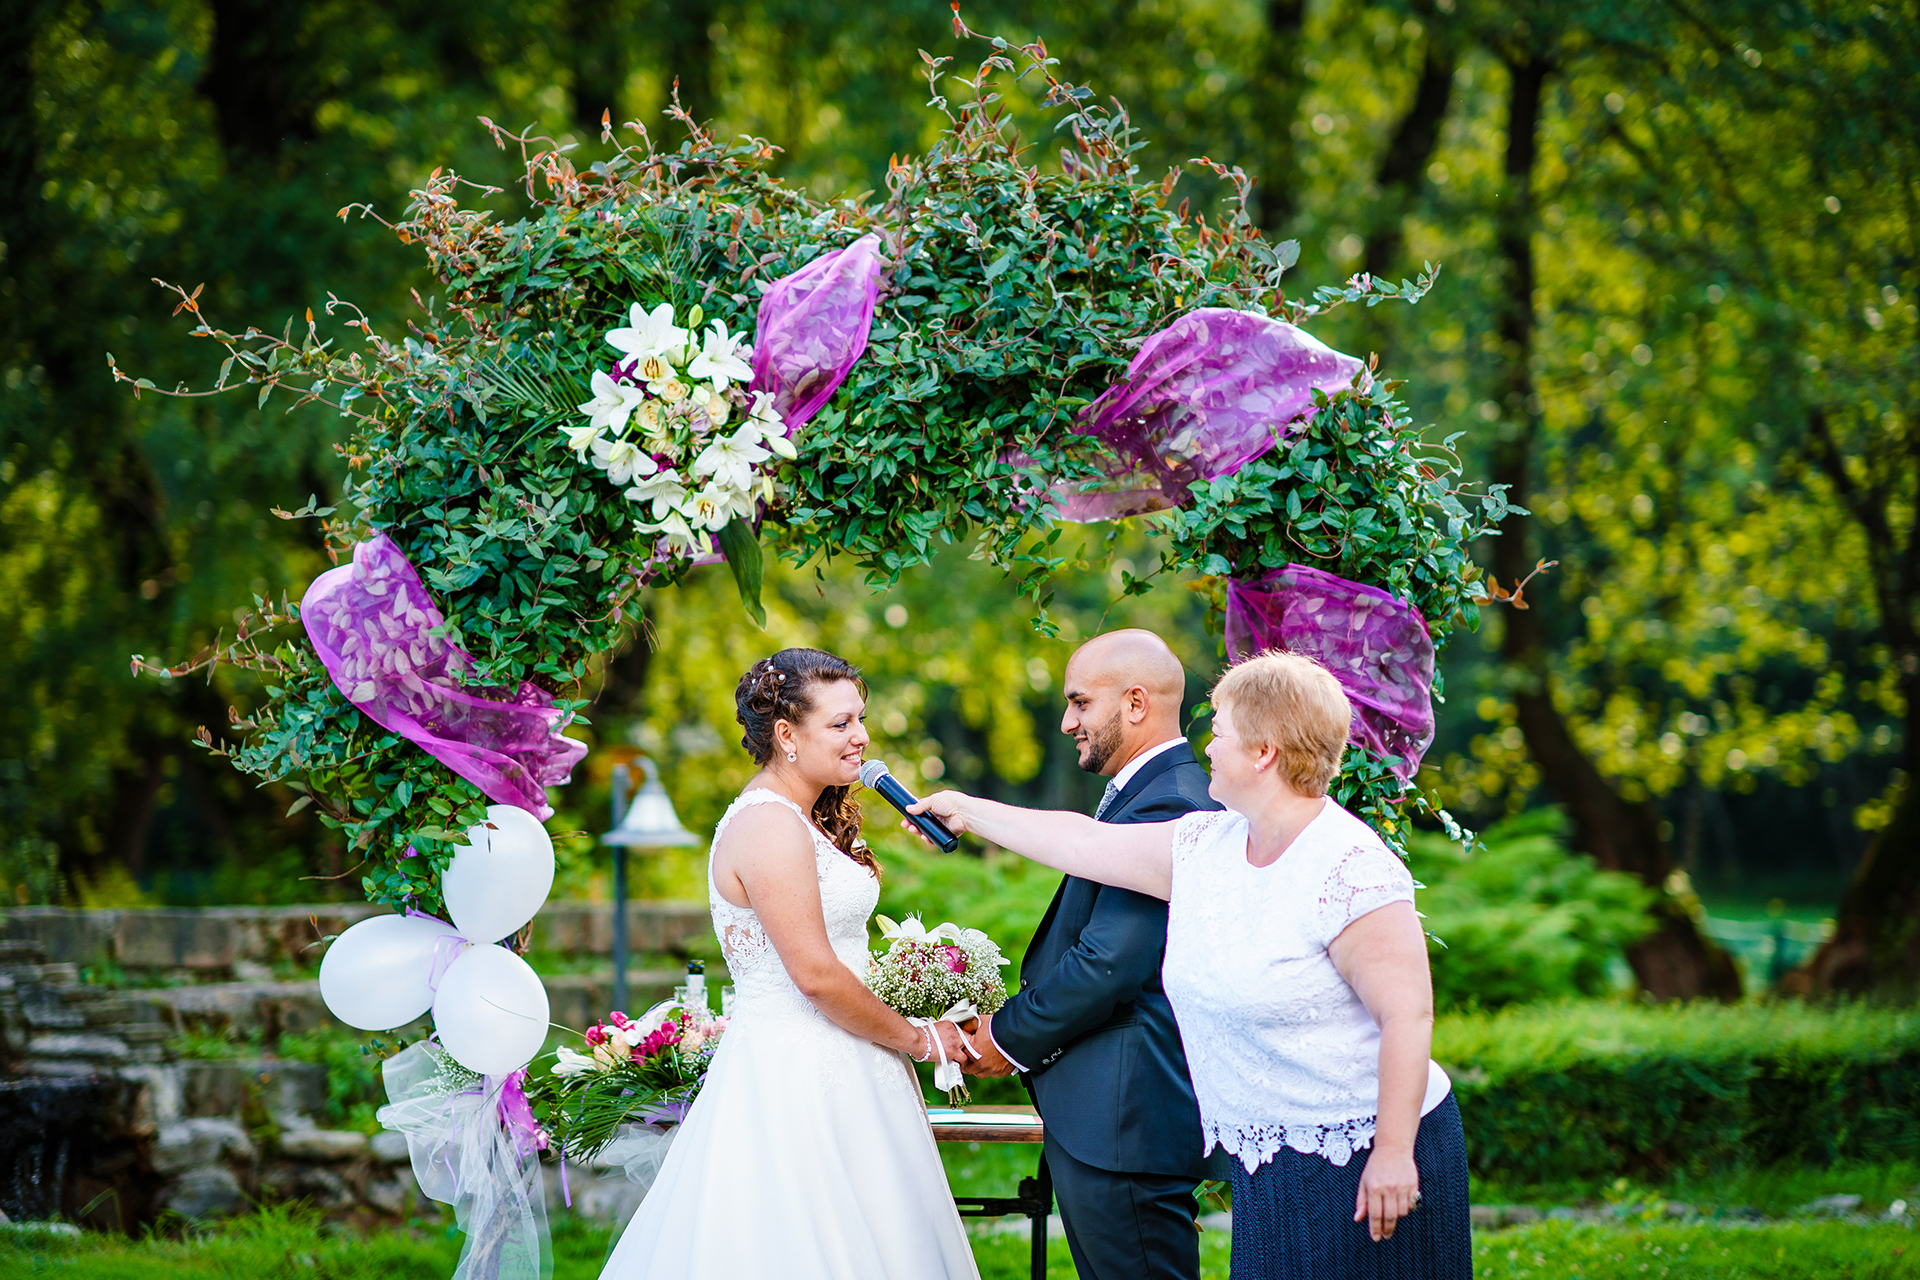 Outdoor Ceremony Image from a Bulgaria Elopement | Standing beneath a floral arch, the bride's big moment has arrived